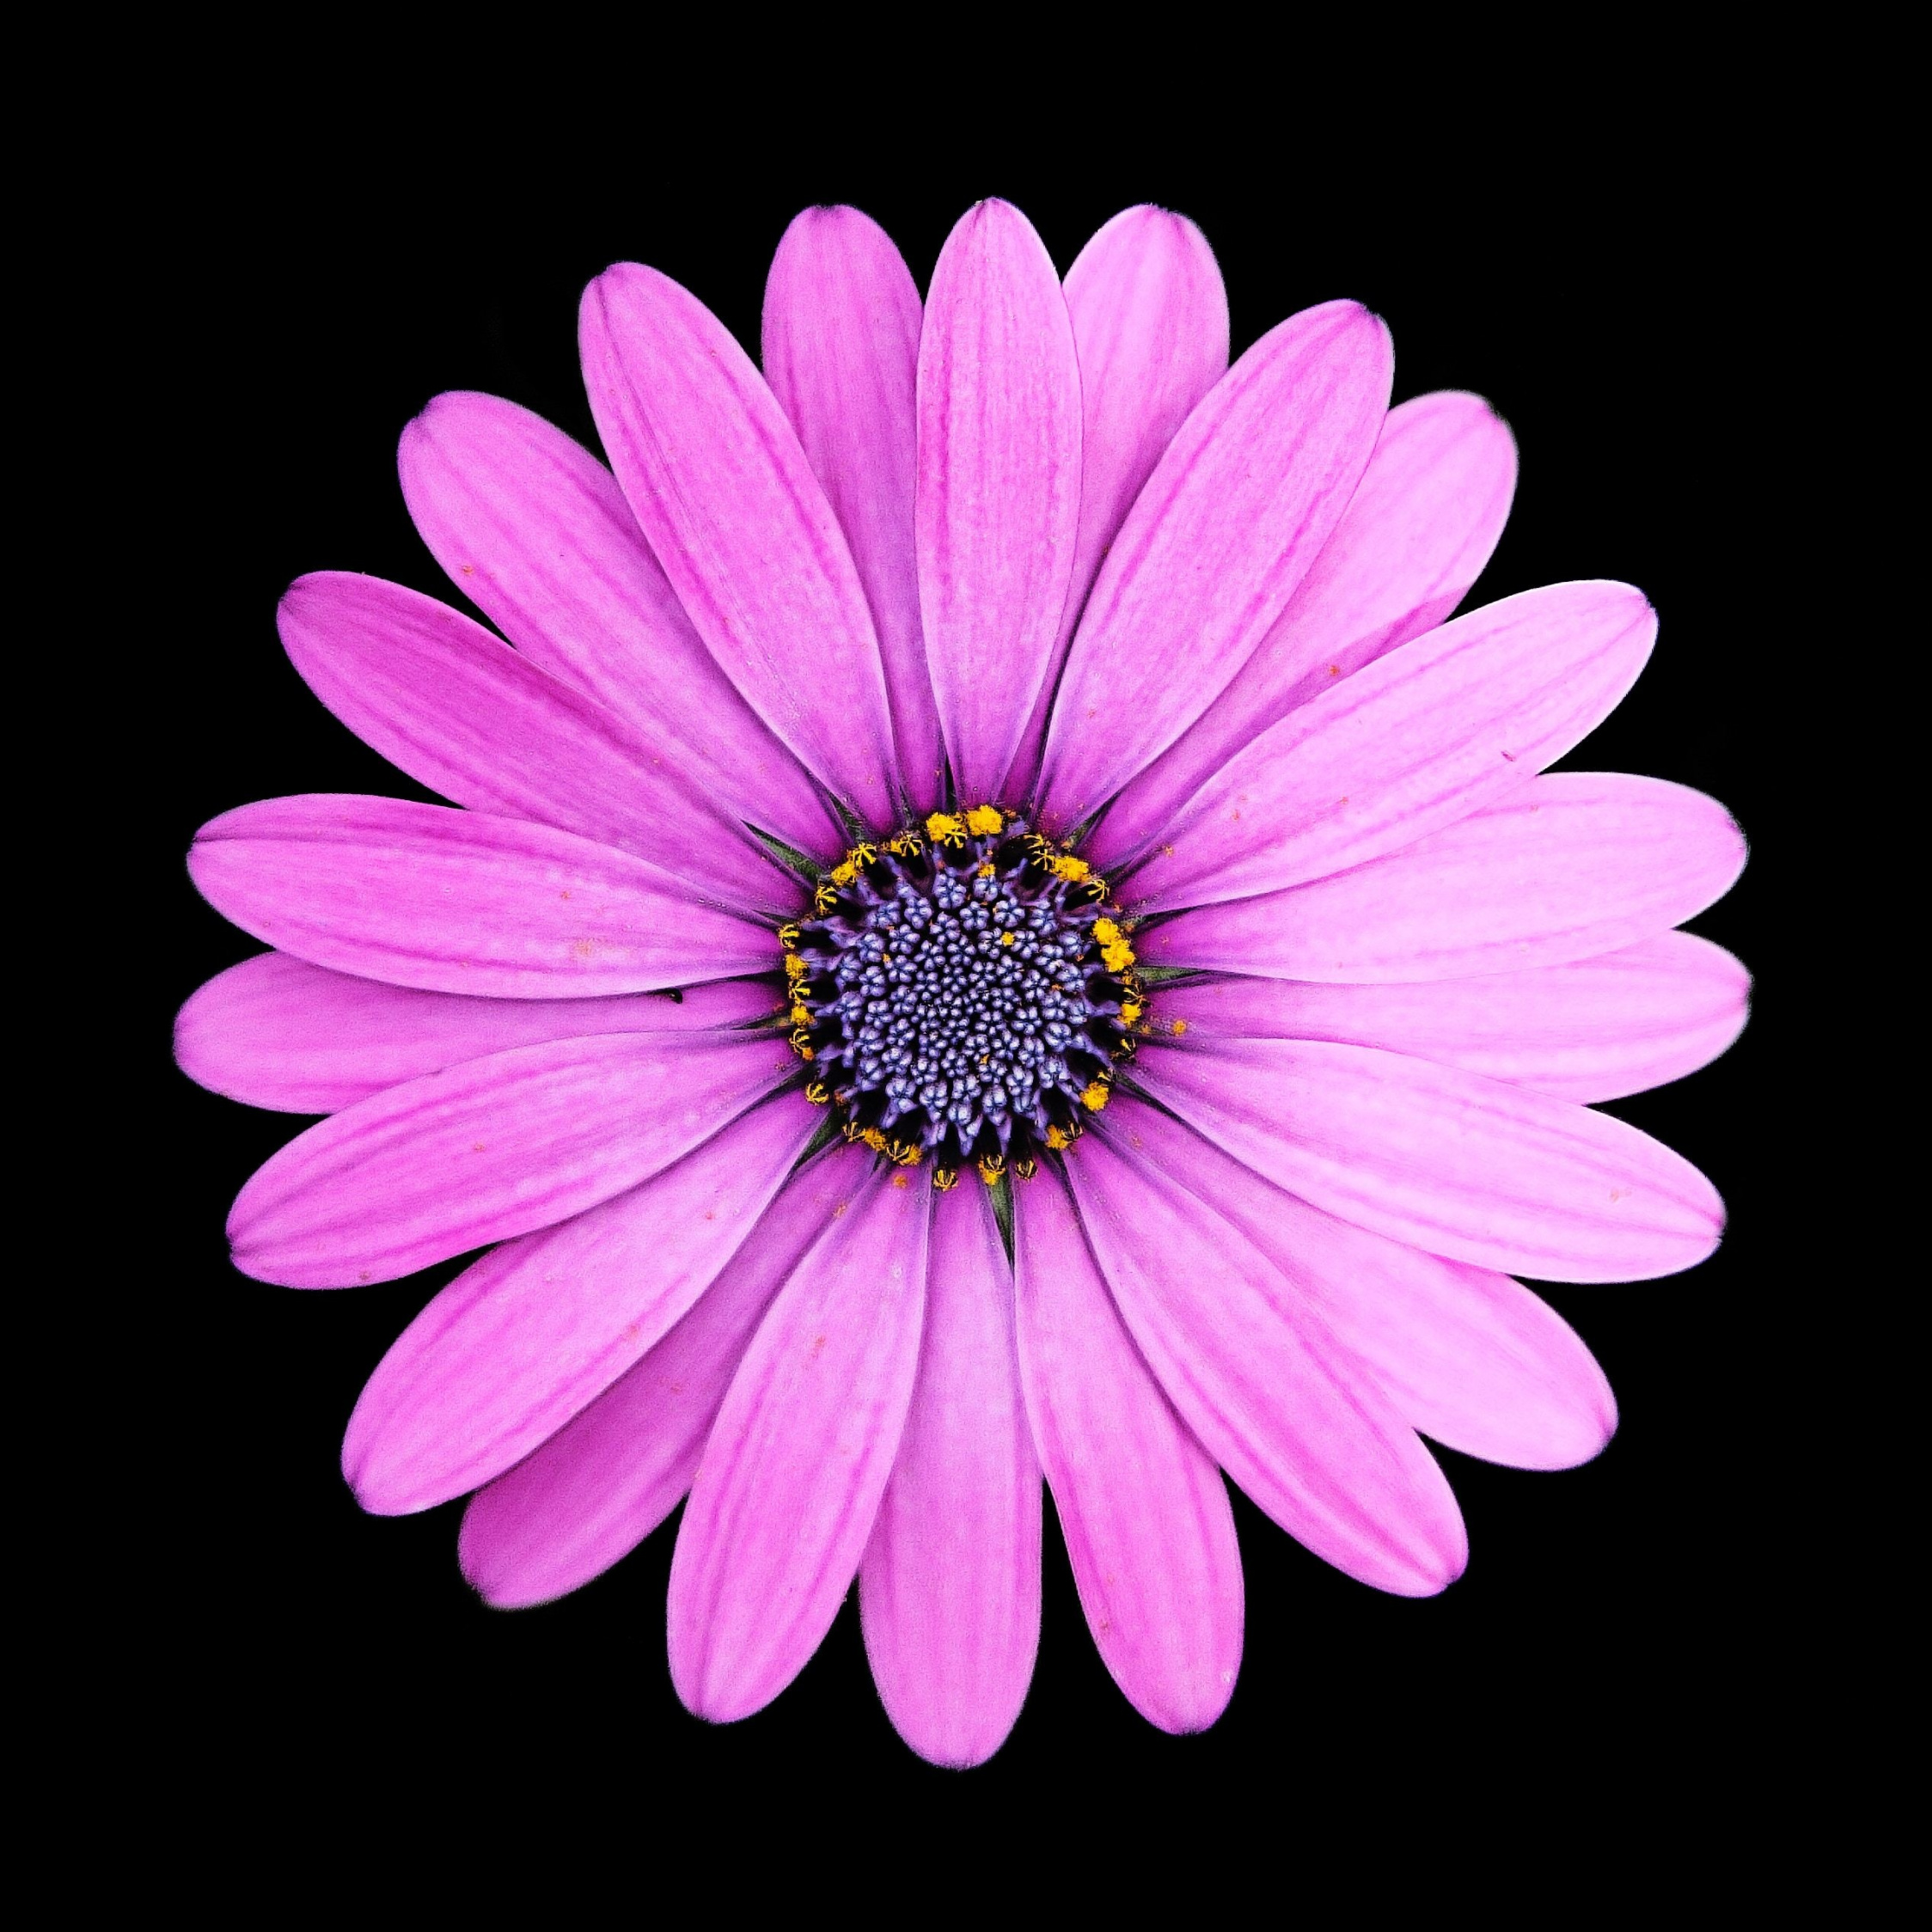 Wallpaper Margarita, Daisy, Flower, Purple, Portrait